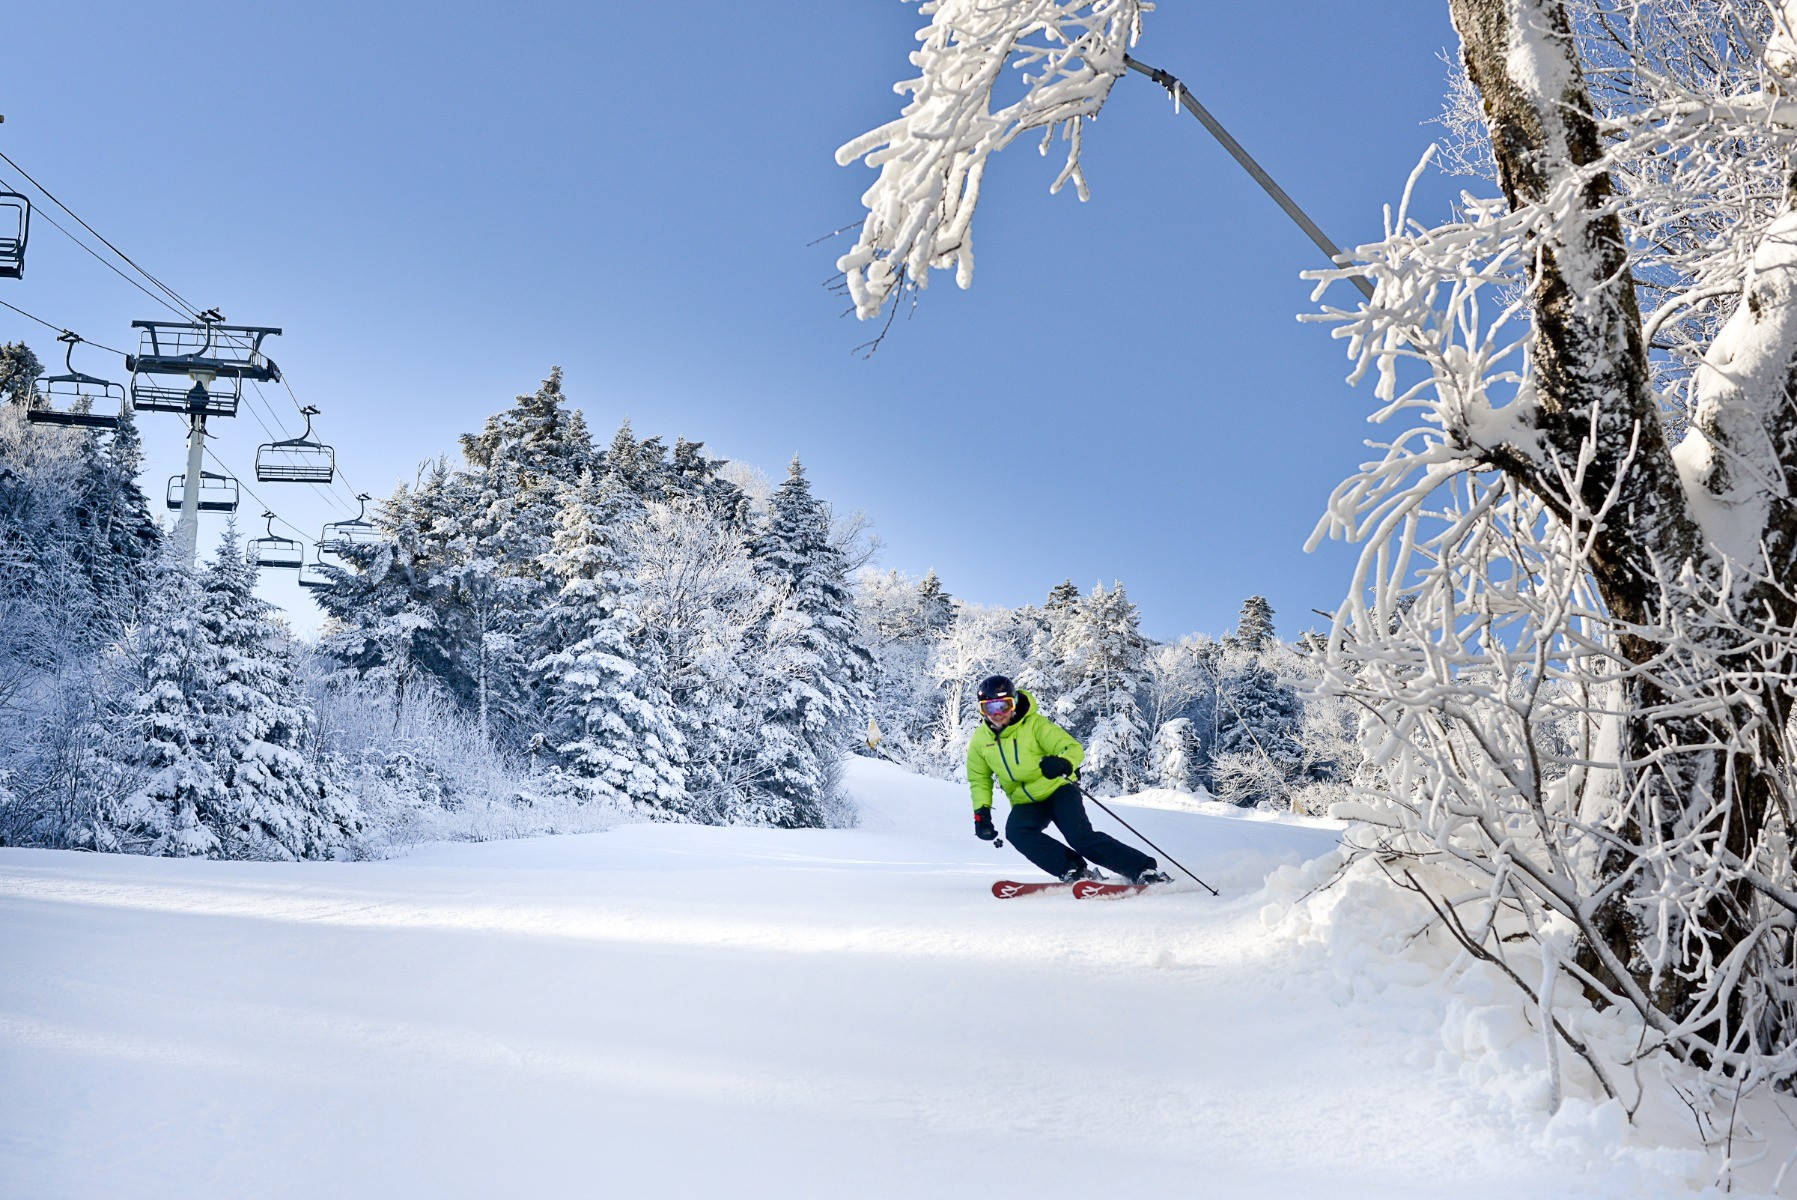 Perfect turns at Stratton. Photo: Hubert Schreibl / Courtesy of Stratton Mountain.undefined